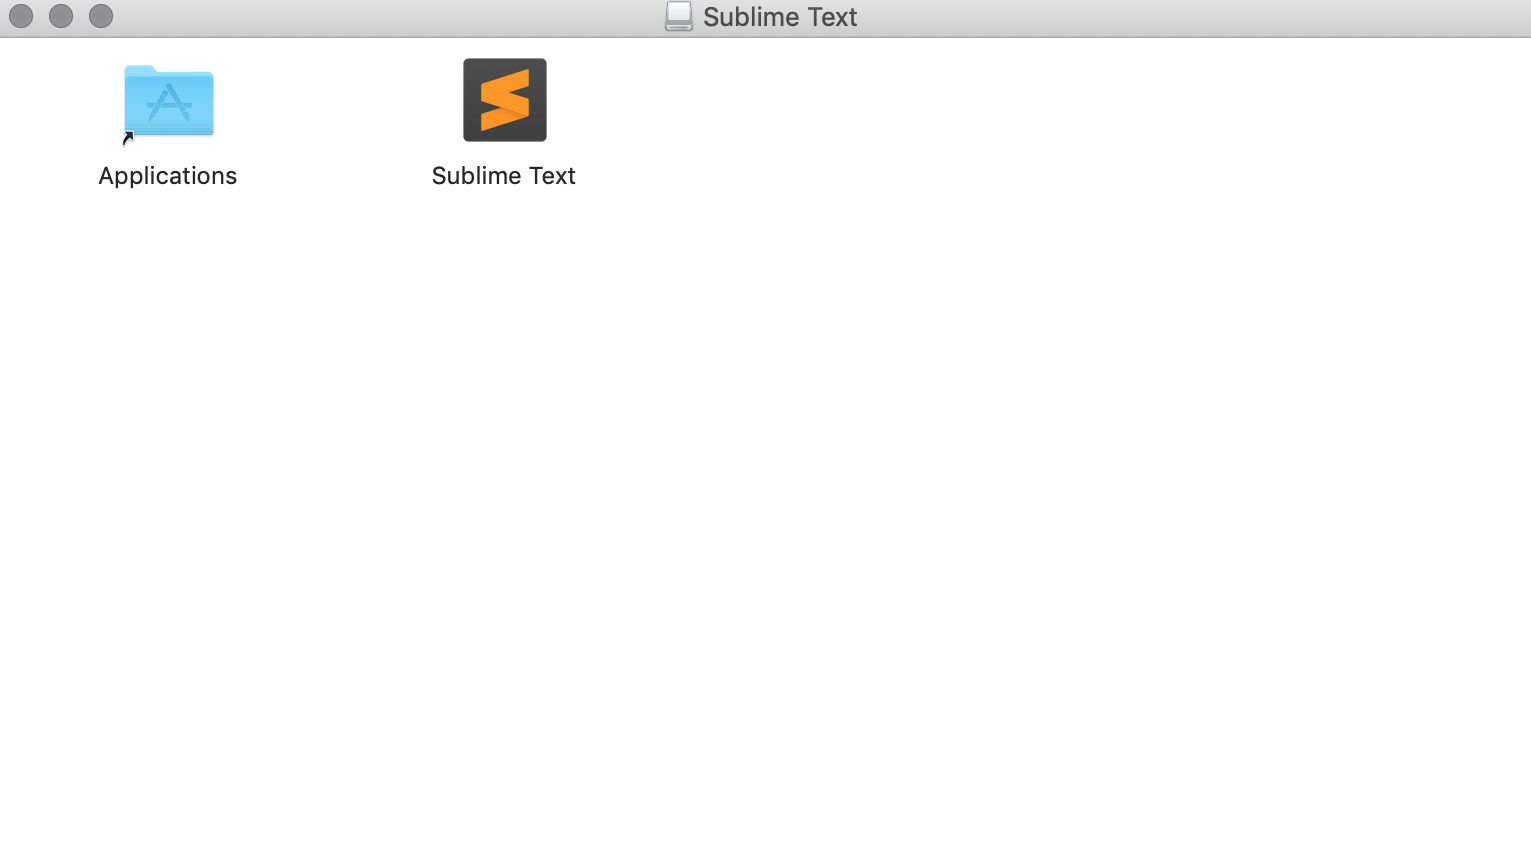 Install sublime text on mac by dragging into application folder - Sikademy